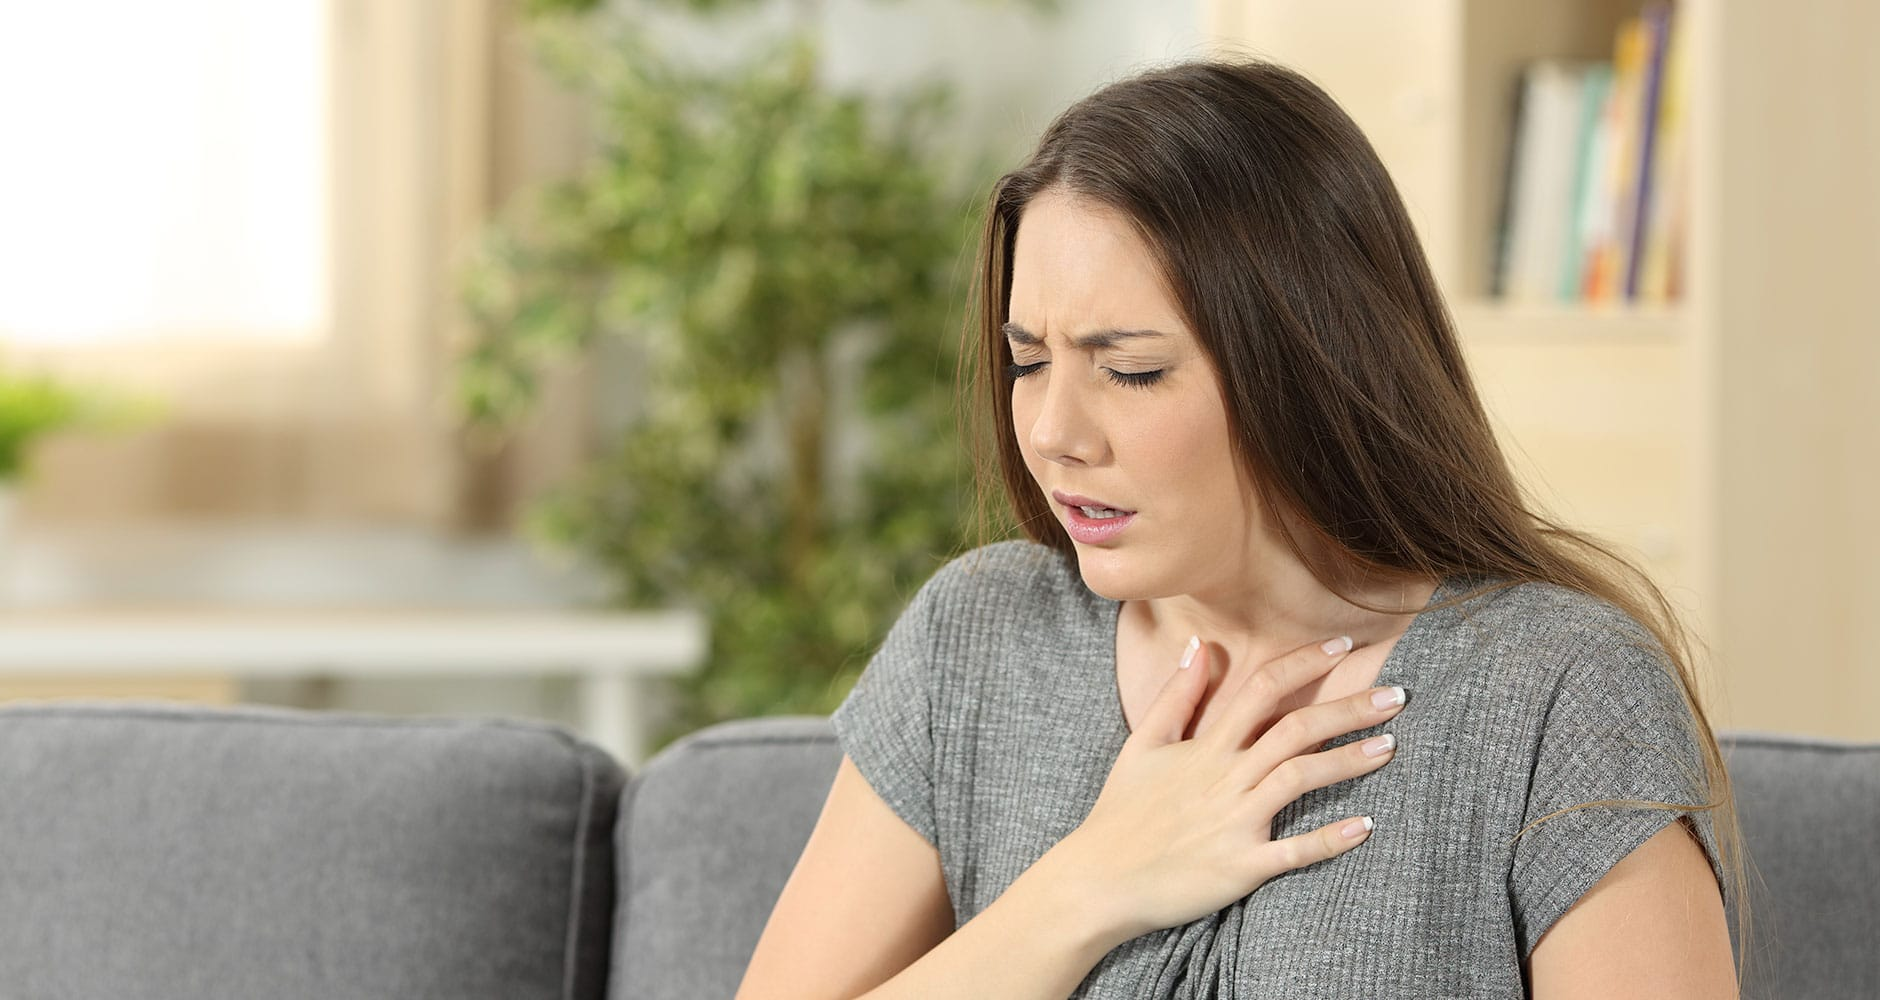 woman with asthma having difficulty breathing.